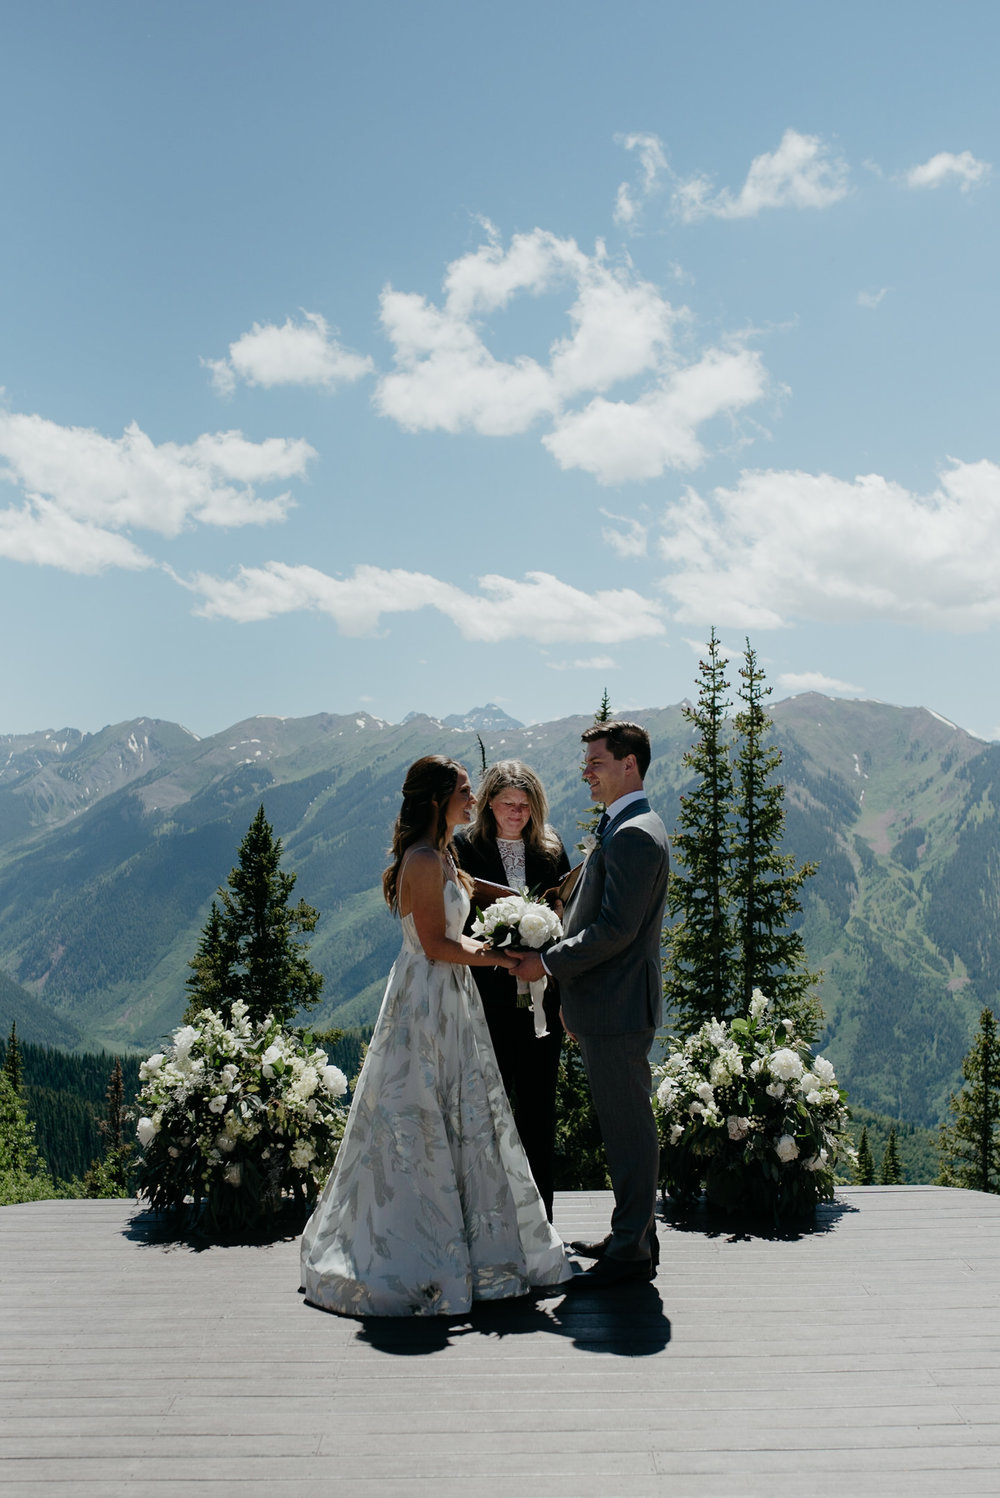 Ceremony at The Little Nell. Aspen, Colorado mountain wedding venue.